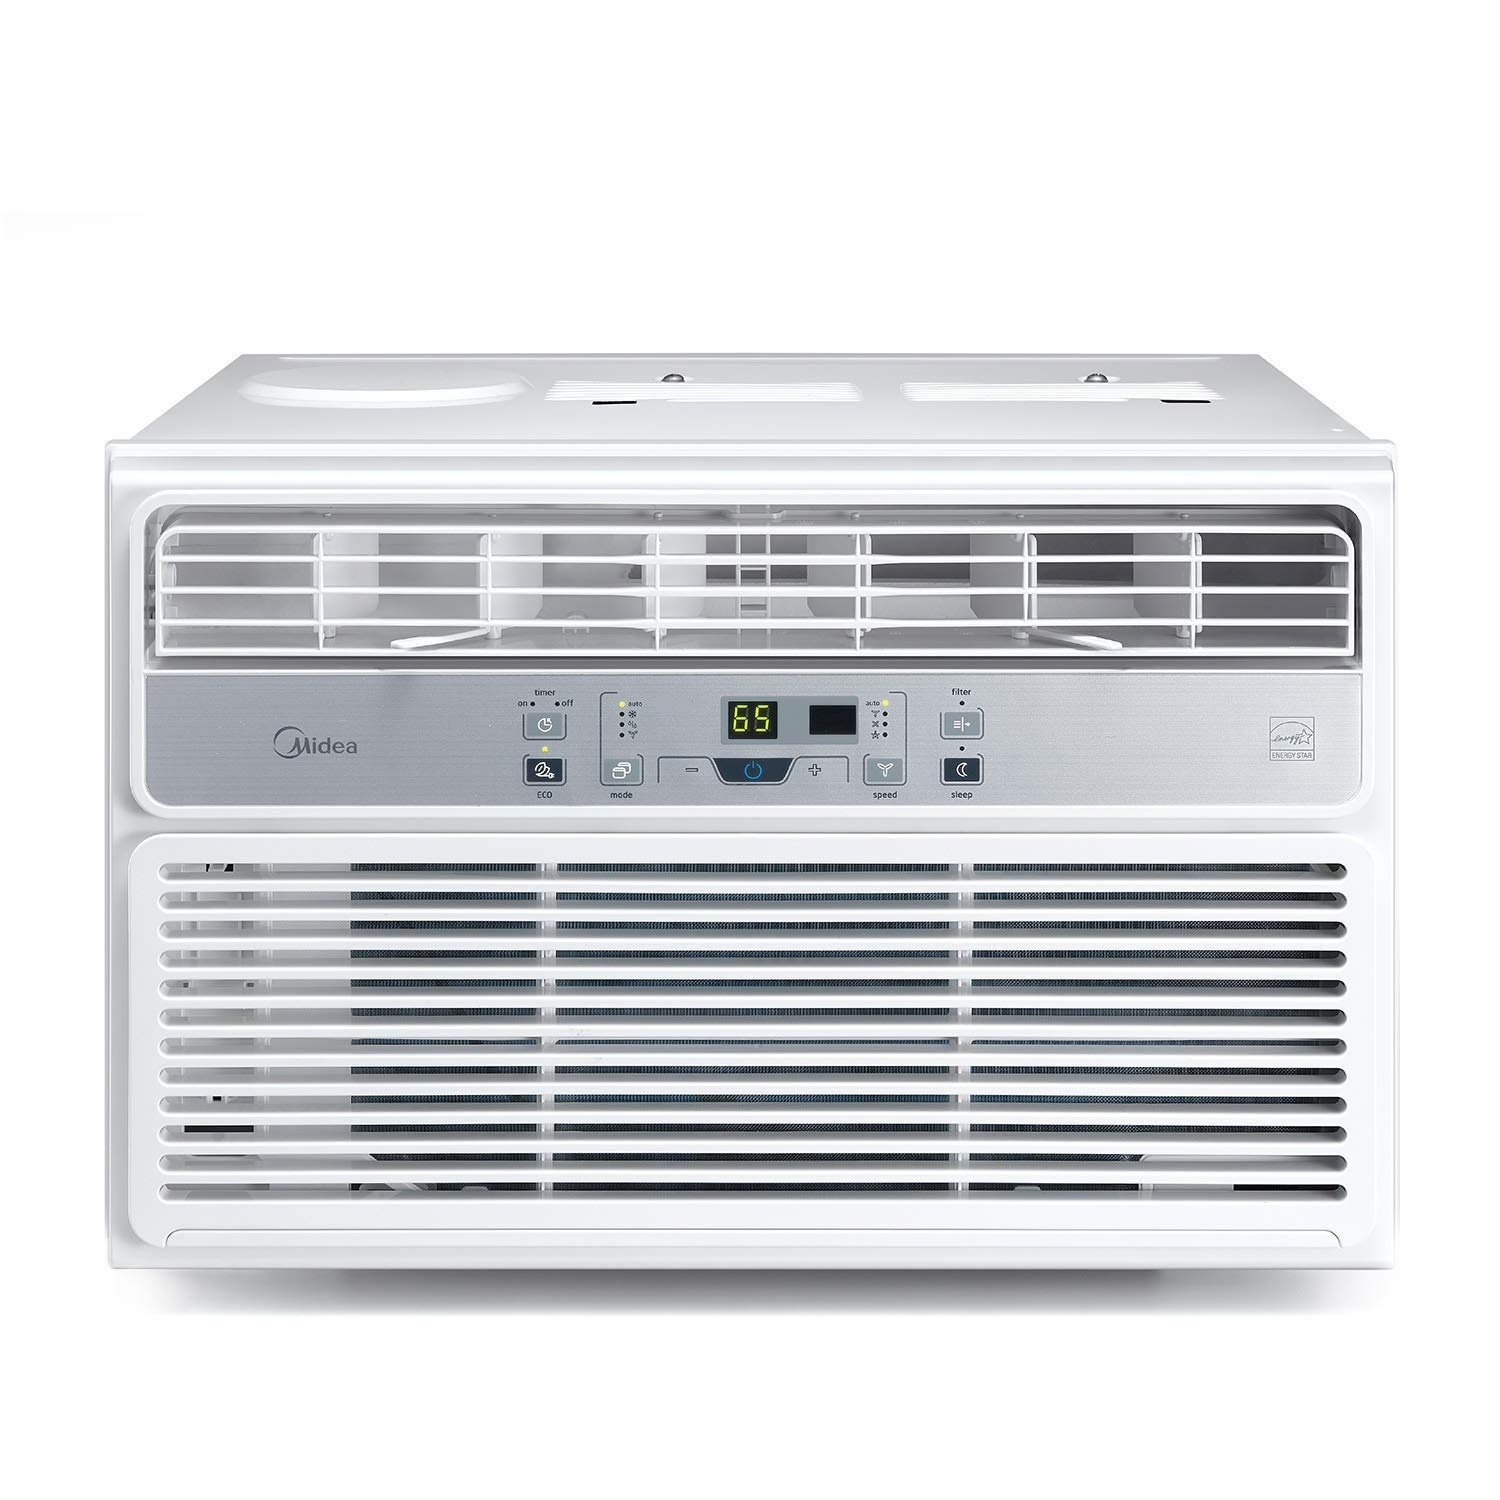 MIDEA MAW06R1BWT Window Air Conditioner 6000 BTU Easycool AC (Cooling, Dehumidifier and Fan Functions) for Rooms up to 250 Sq, ft. with Remote Control, 6,000, White by MIDEA